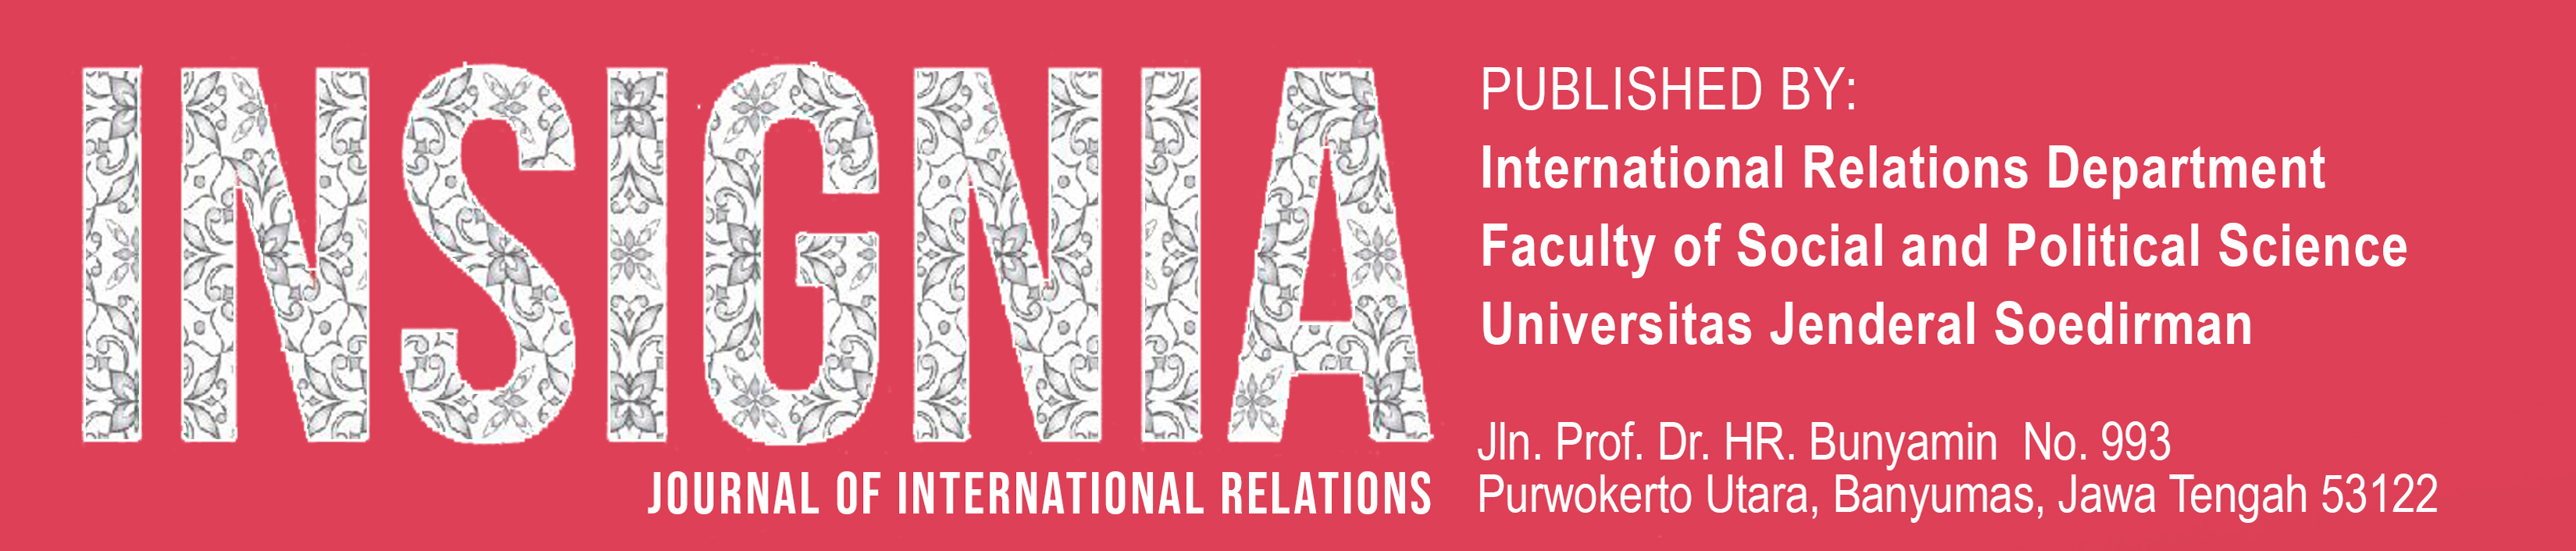 Insignia Journal of International Relations